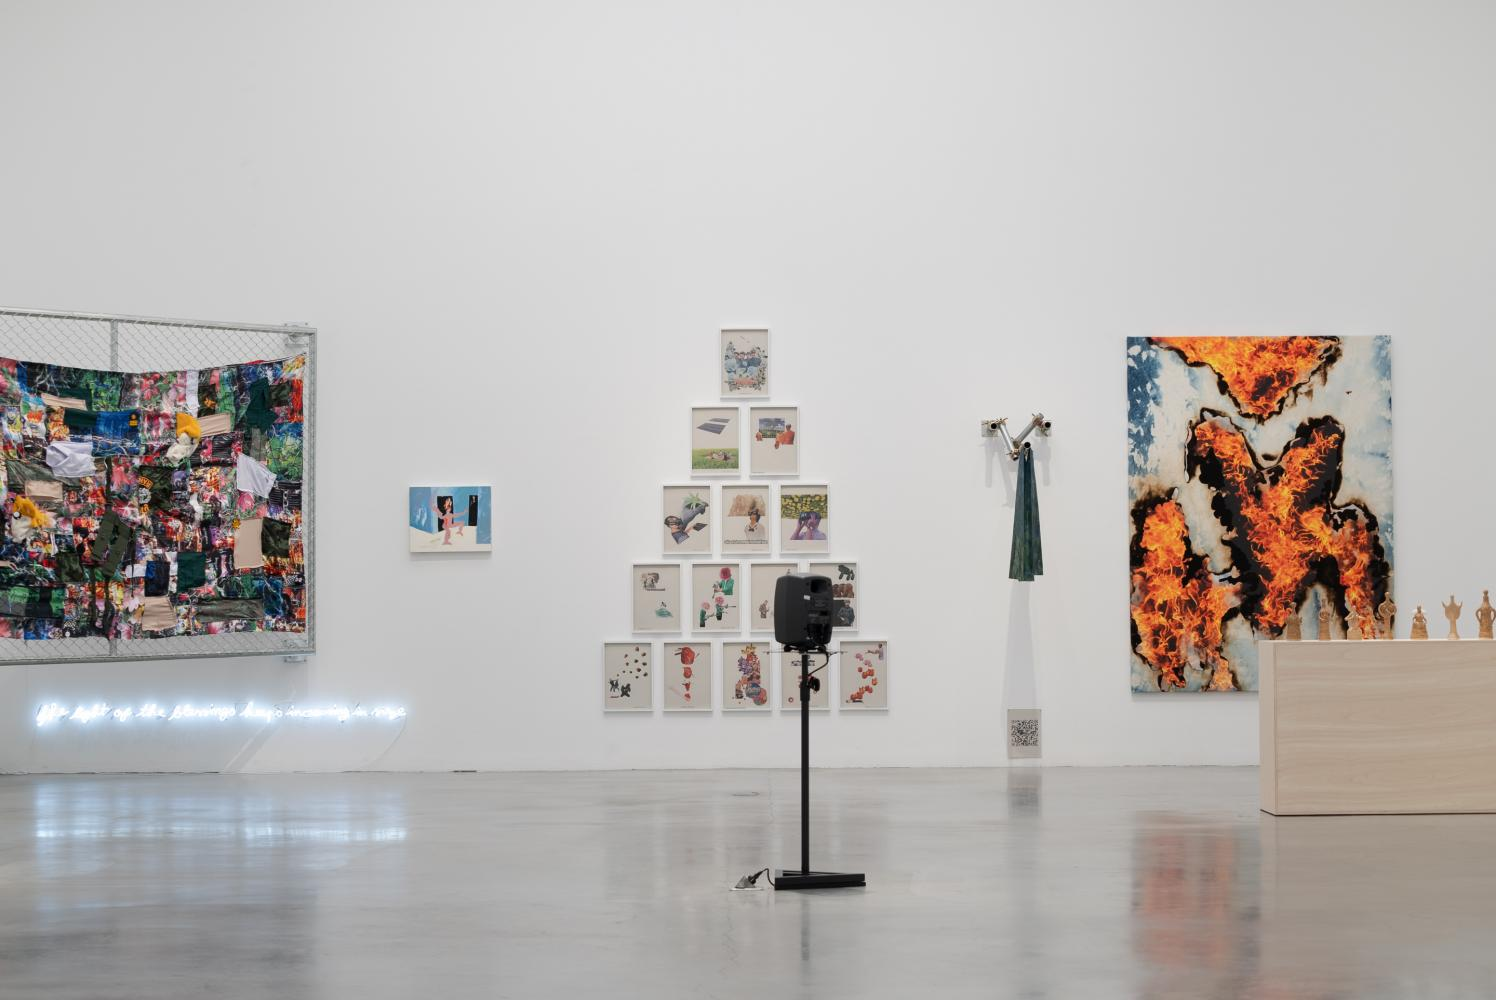 Exhibition places trauma of  current events in the spotlight